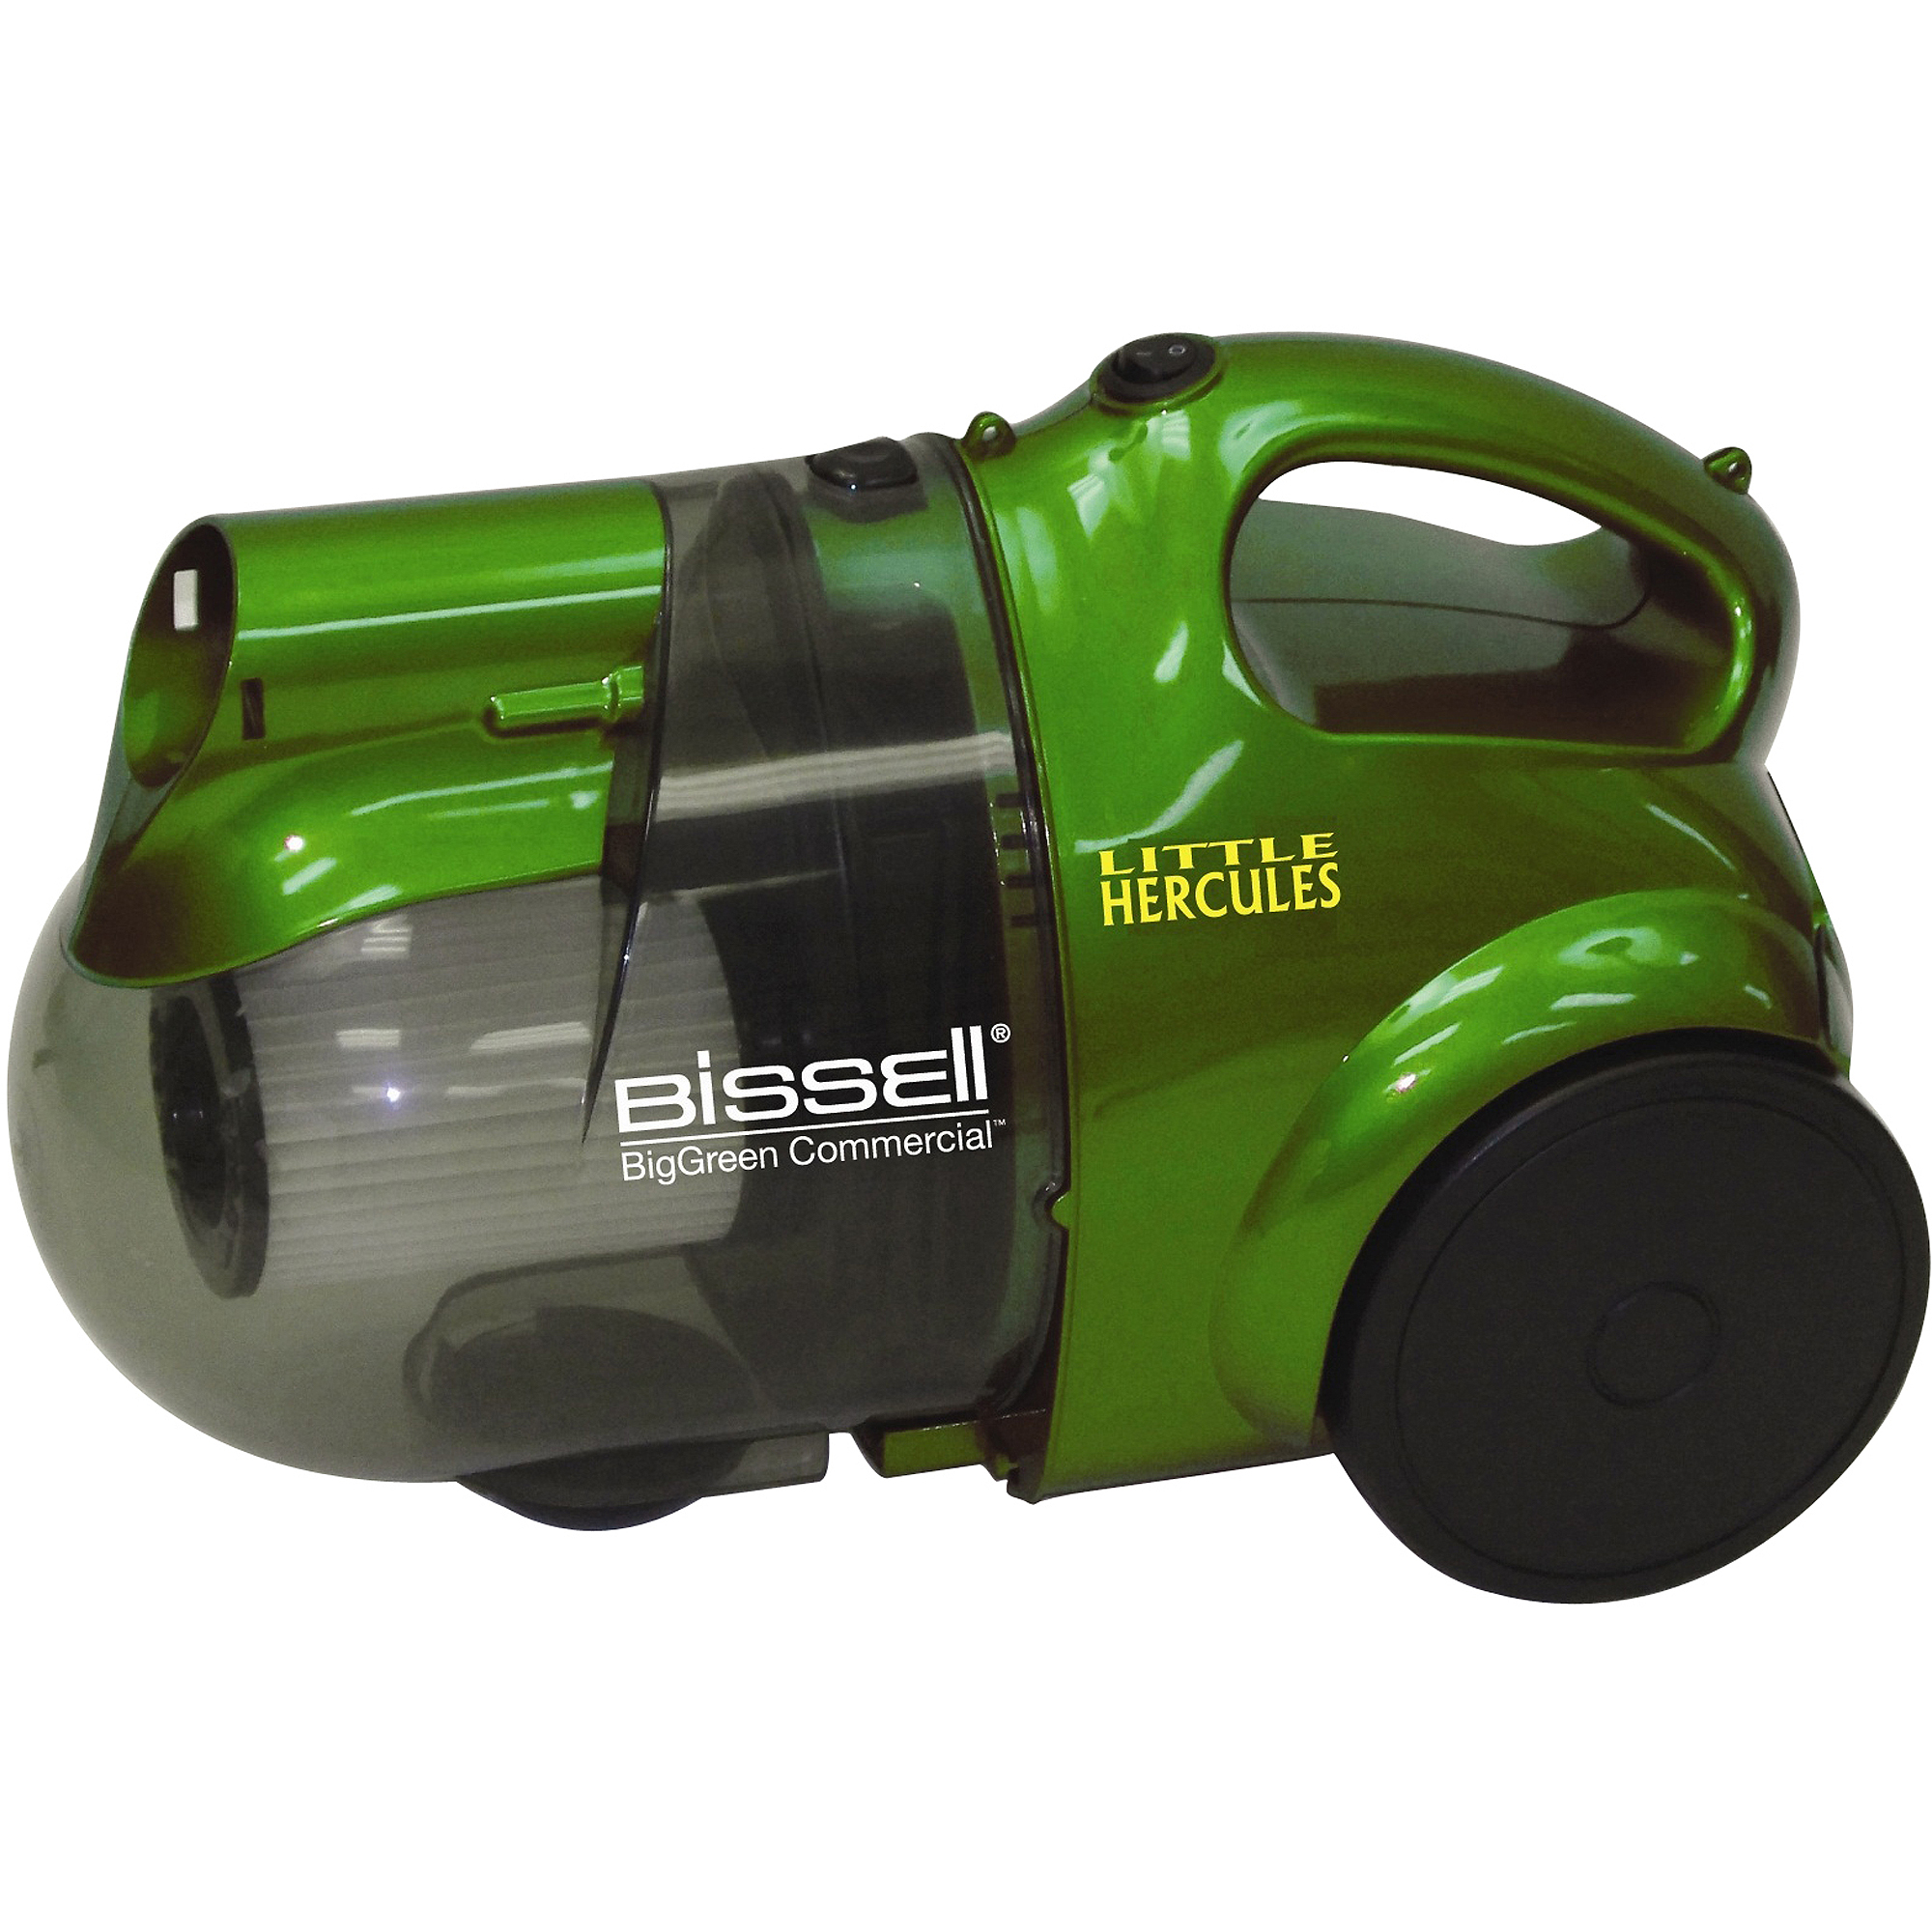 Bissell BigGreen Commercial Little Hercules Canister Vacuum, BGC2000